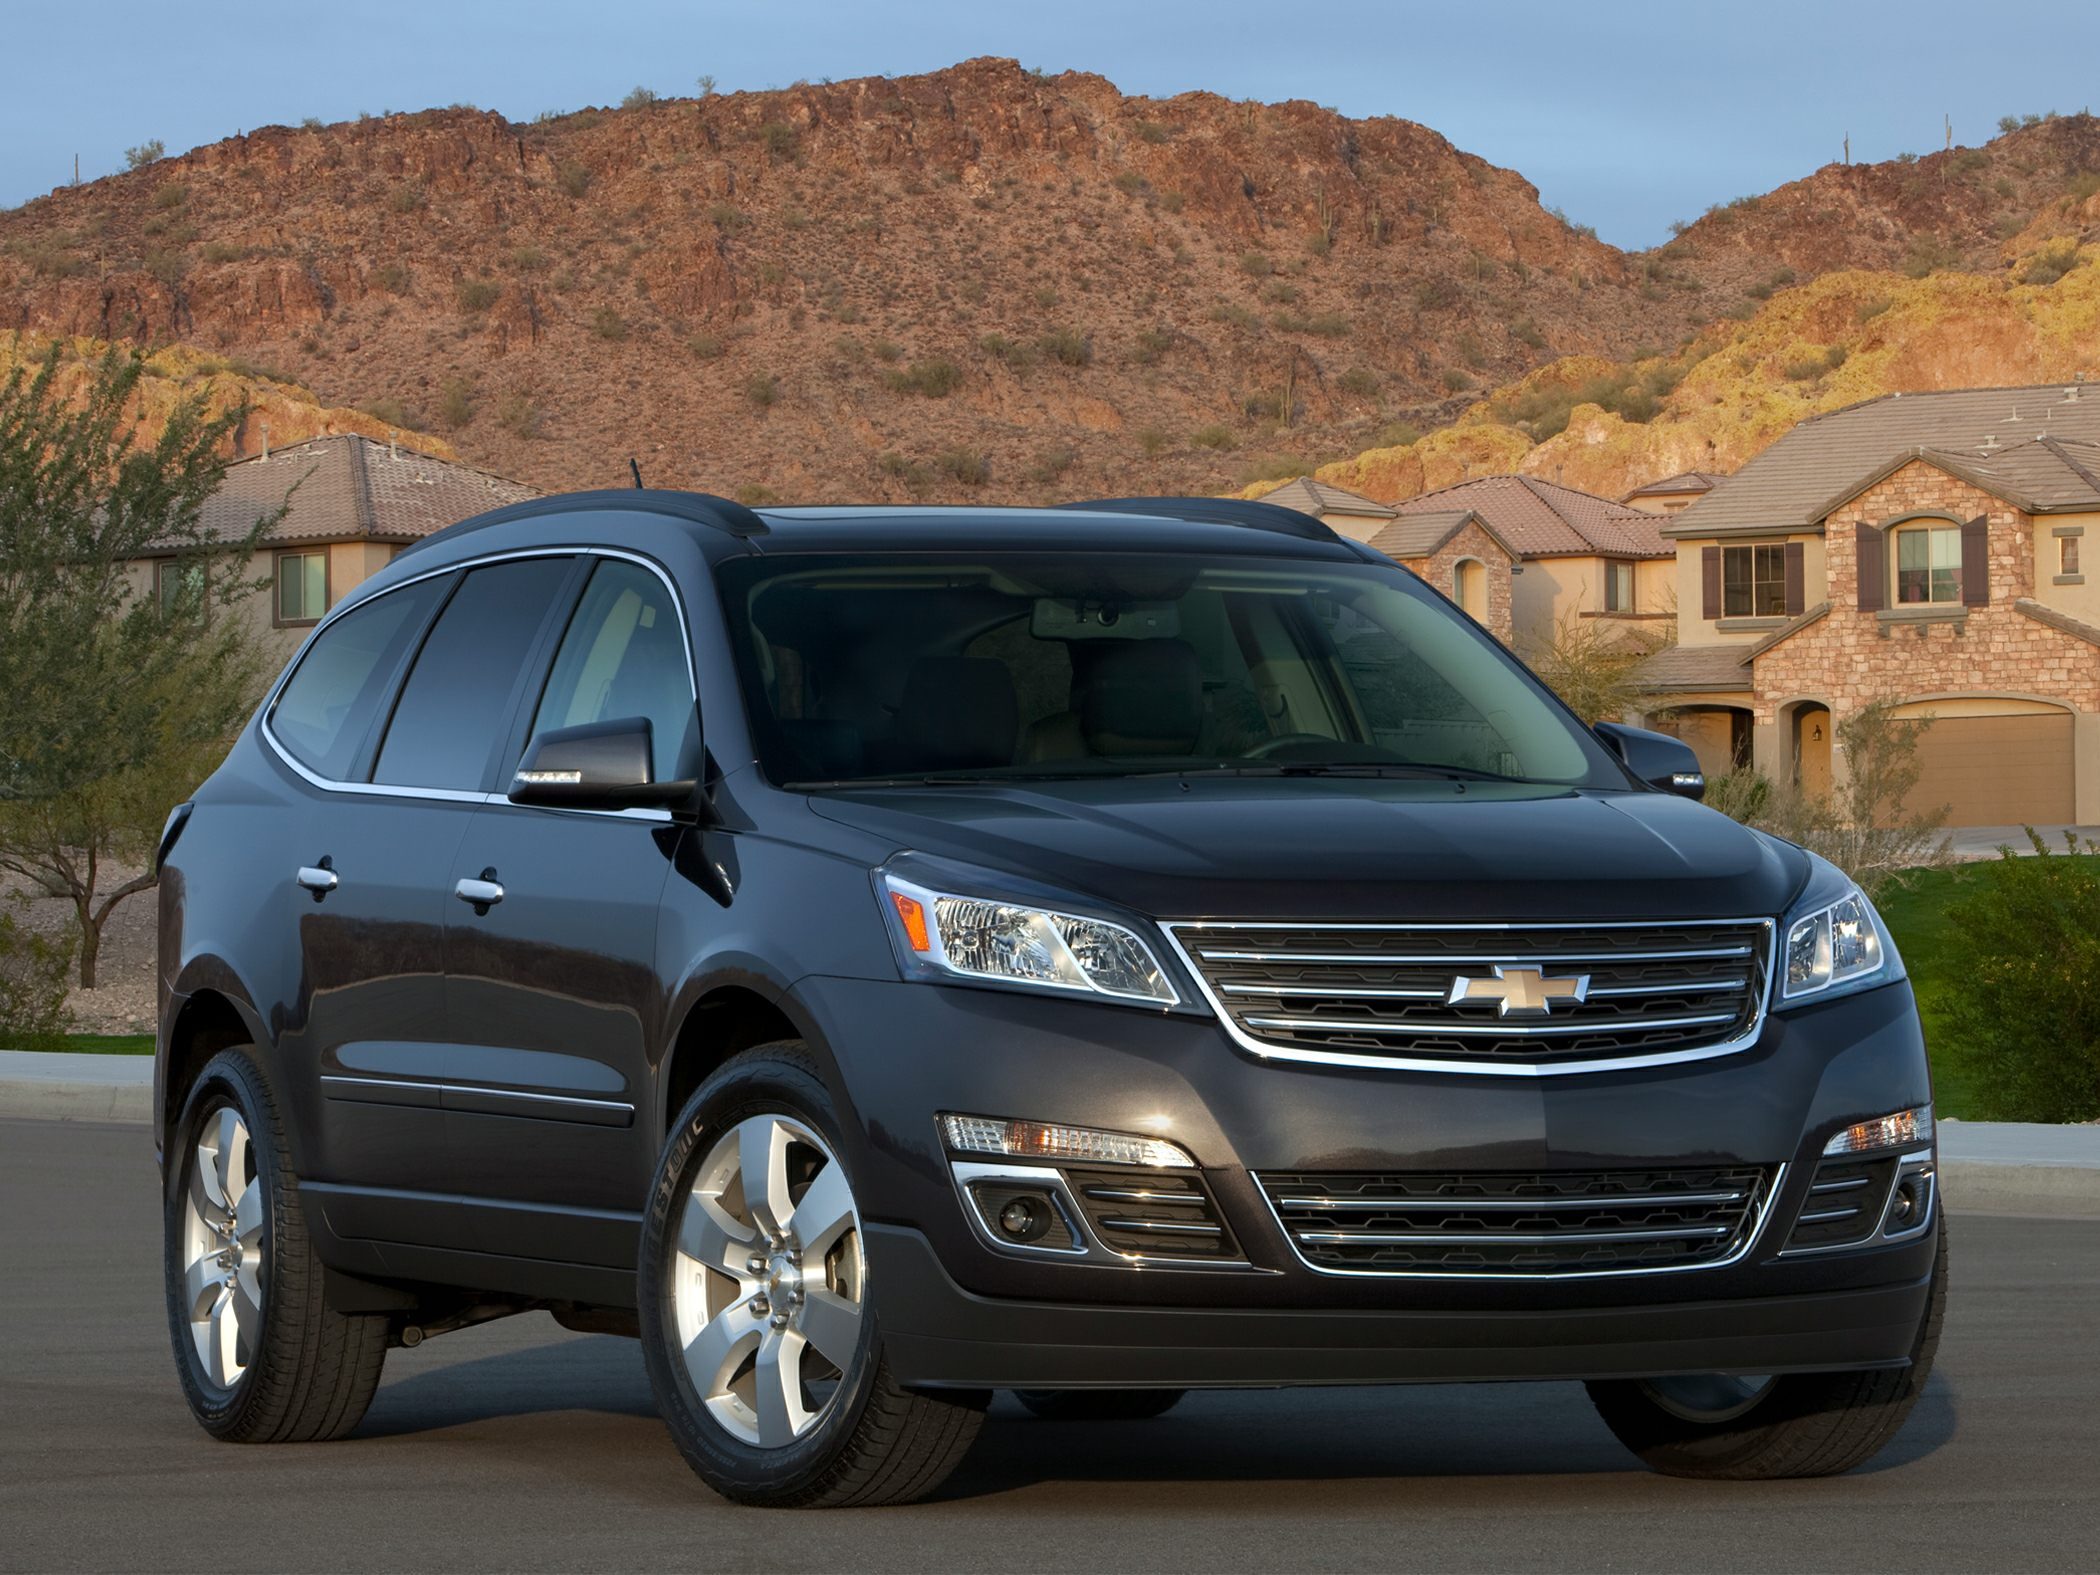 2014 Chevrolet Traverse quarter side